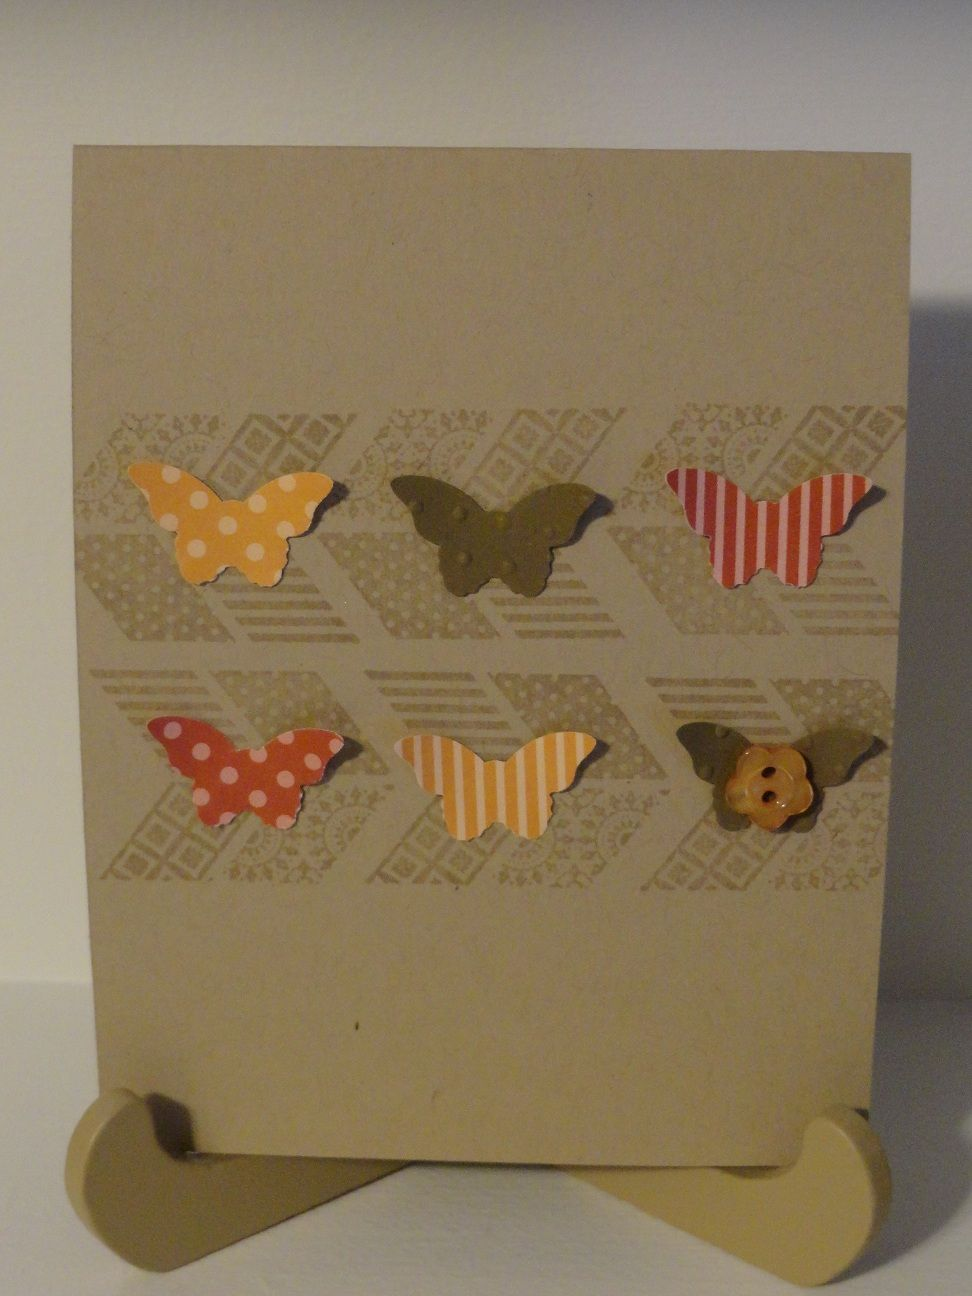 Stampin Up butterfly punch - Oh, Hello stamp set in background in versaMark